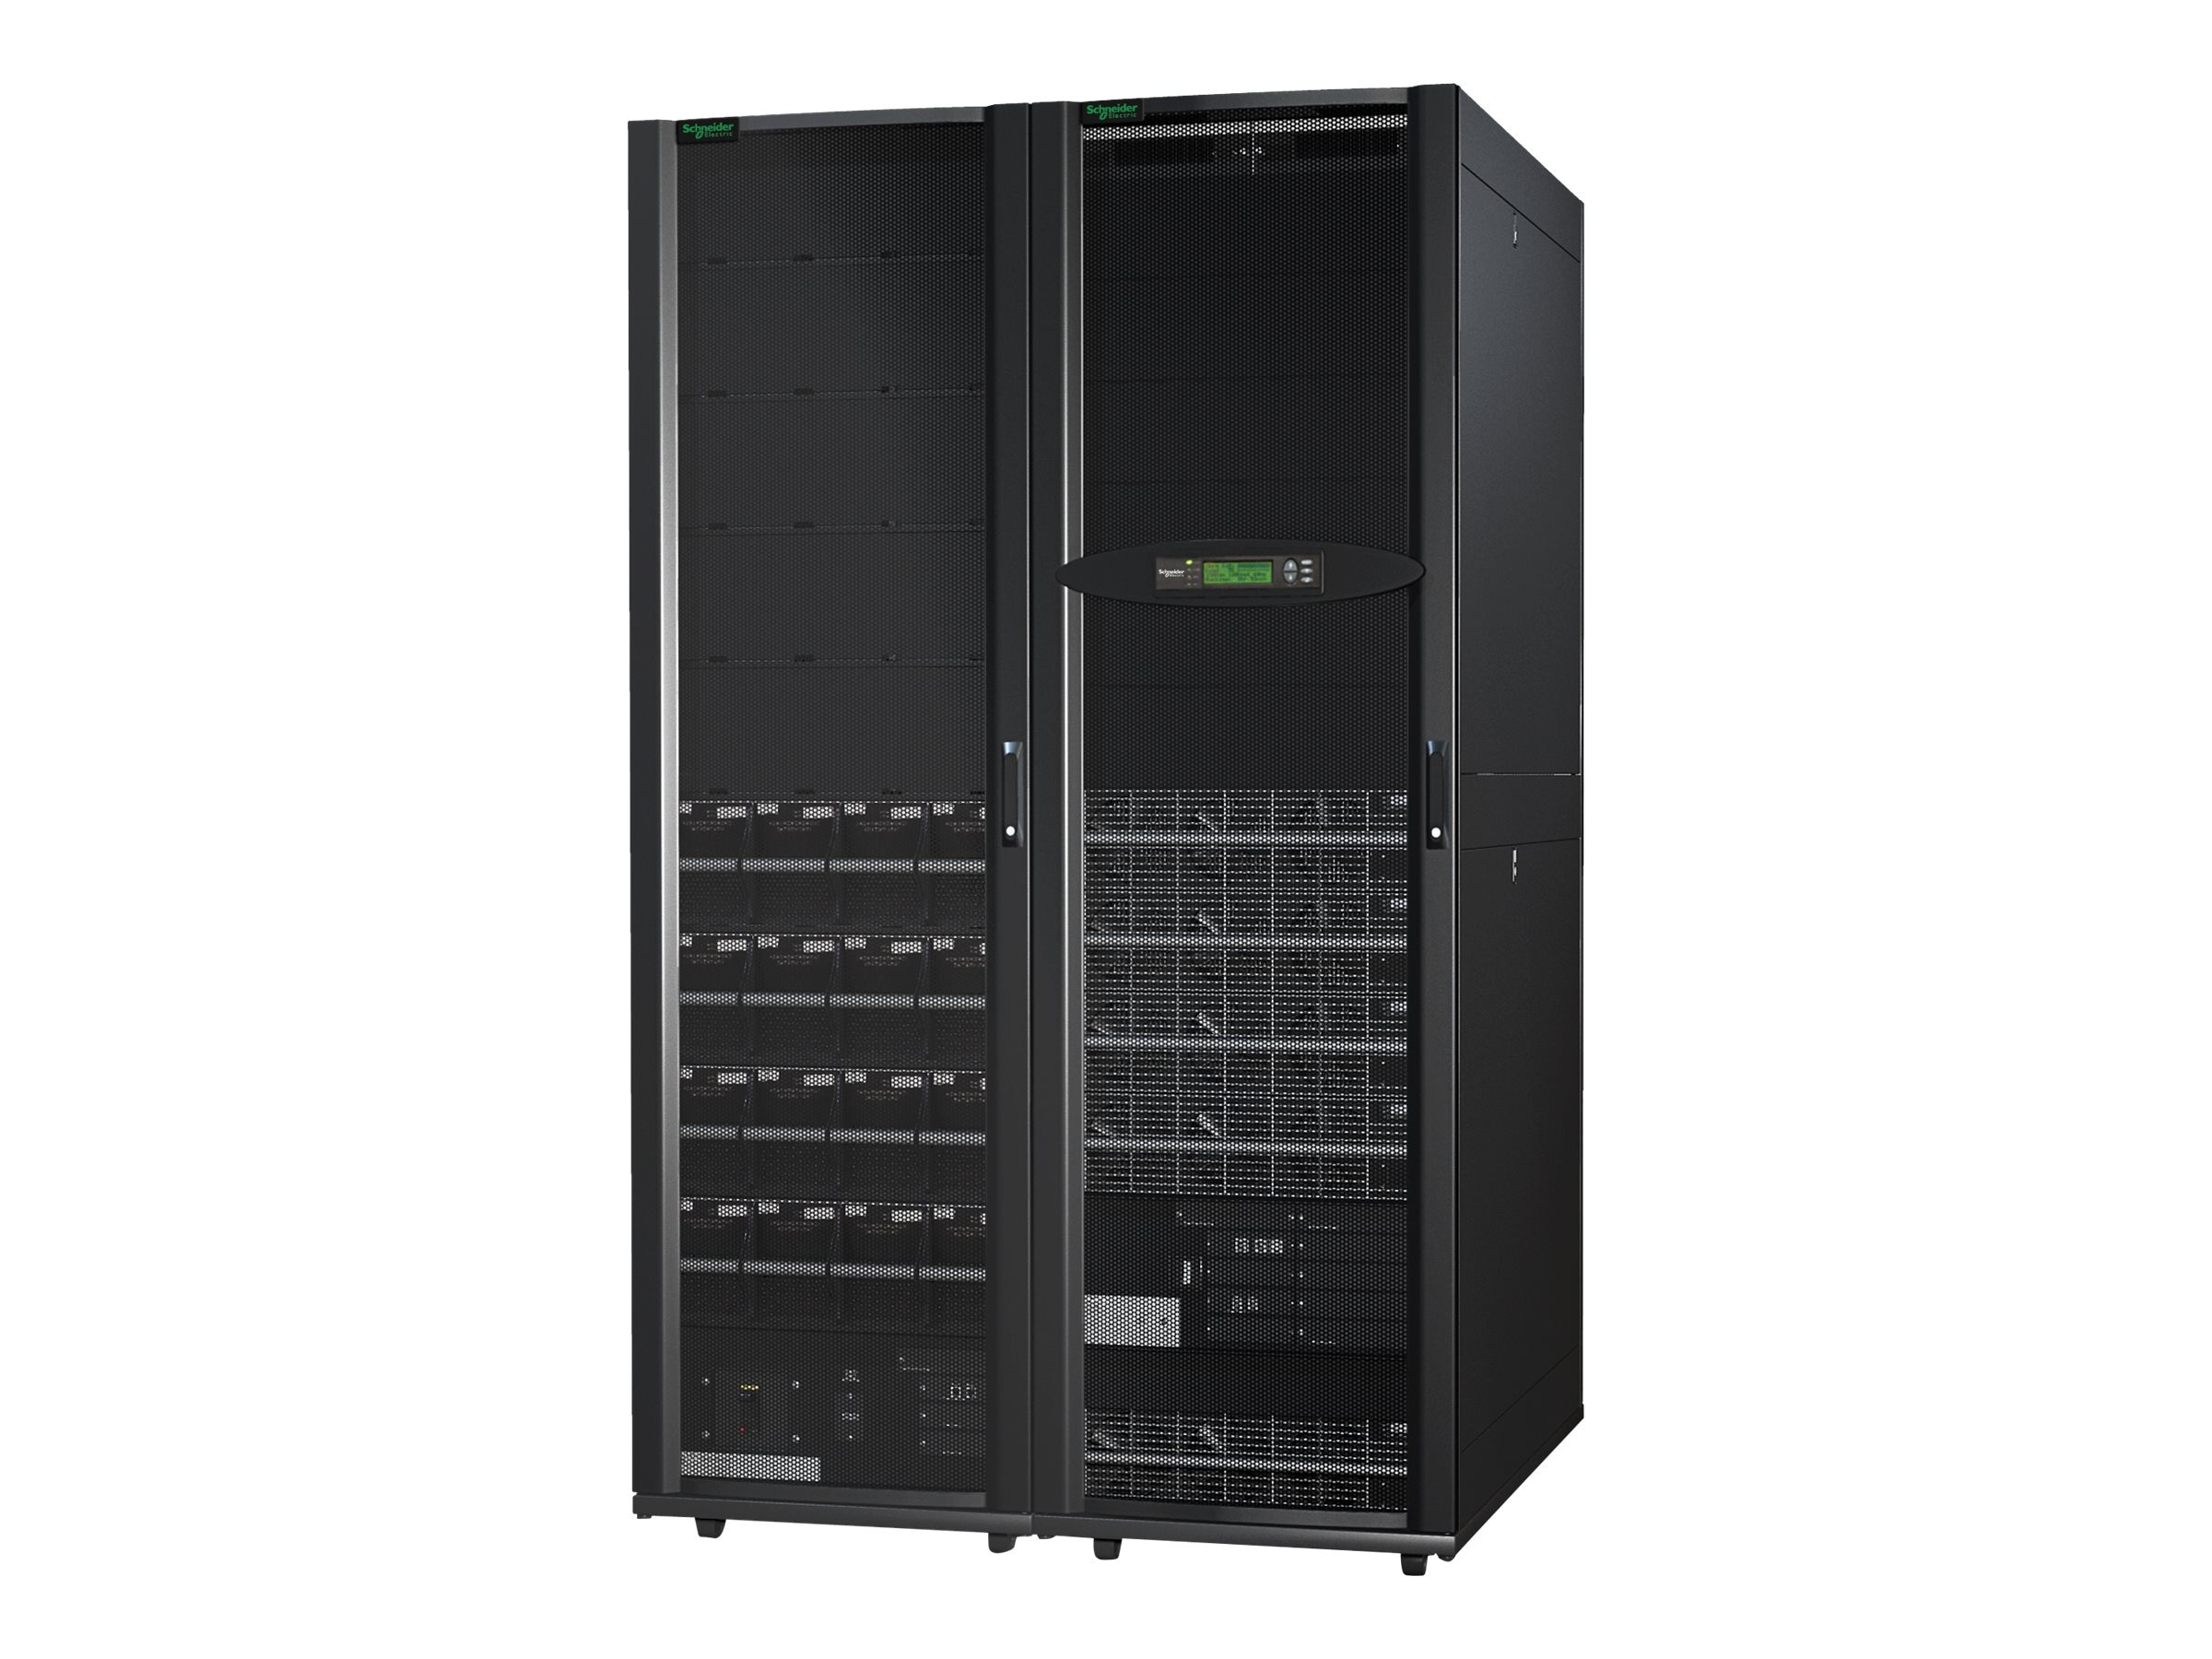 APC Symmetra PX 40kW Scalable to 100kW, 208V with Startup, SY40K100F